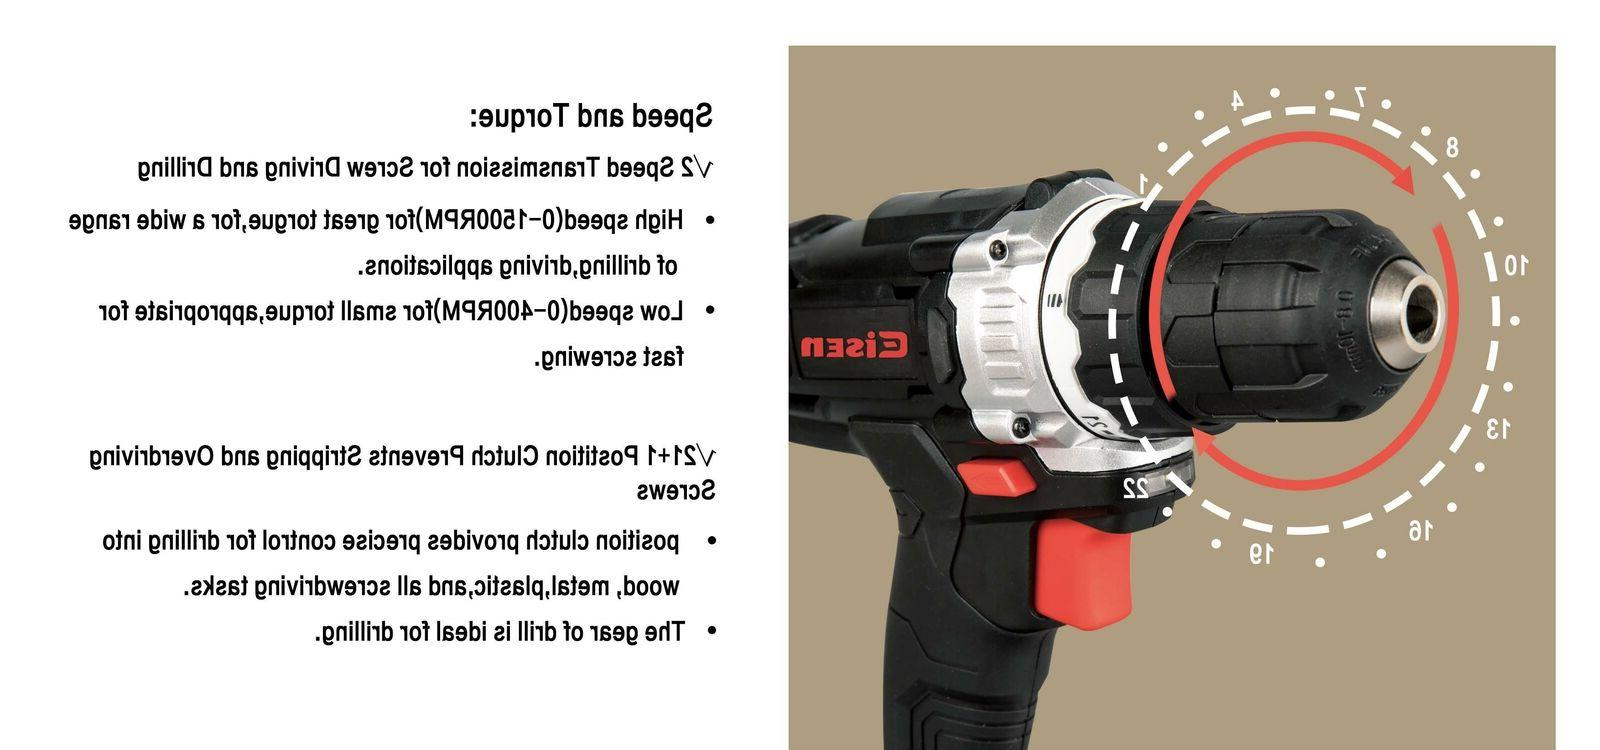 12V Cordless Drill Clutch with Worklight